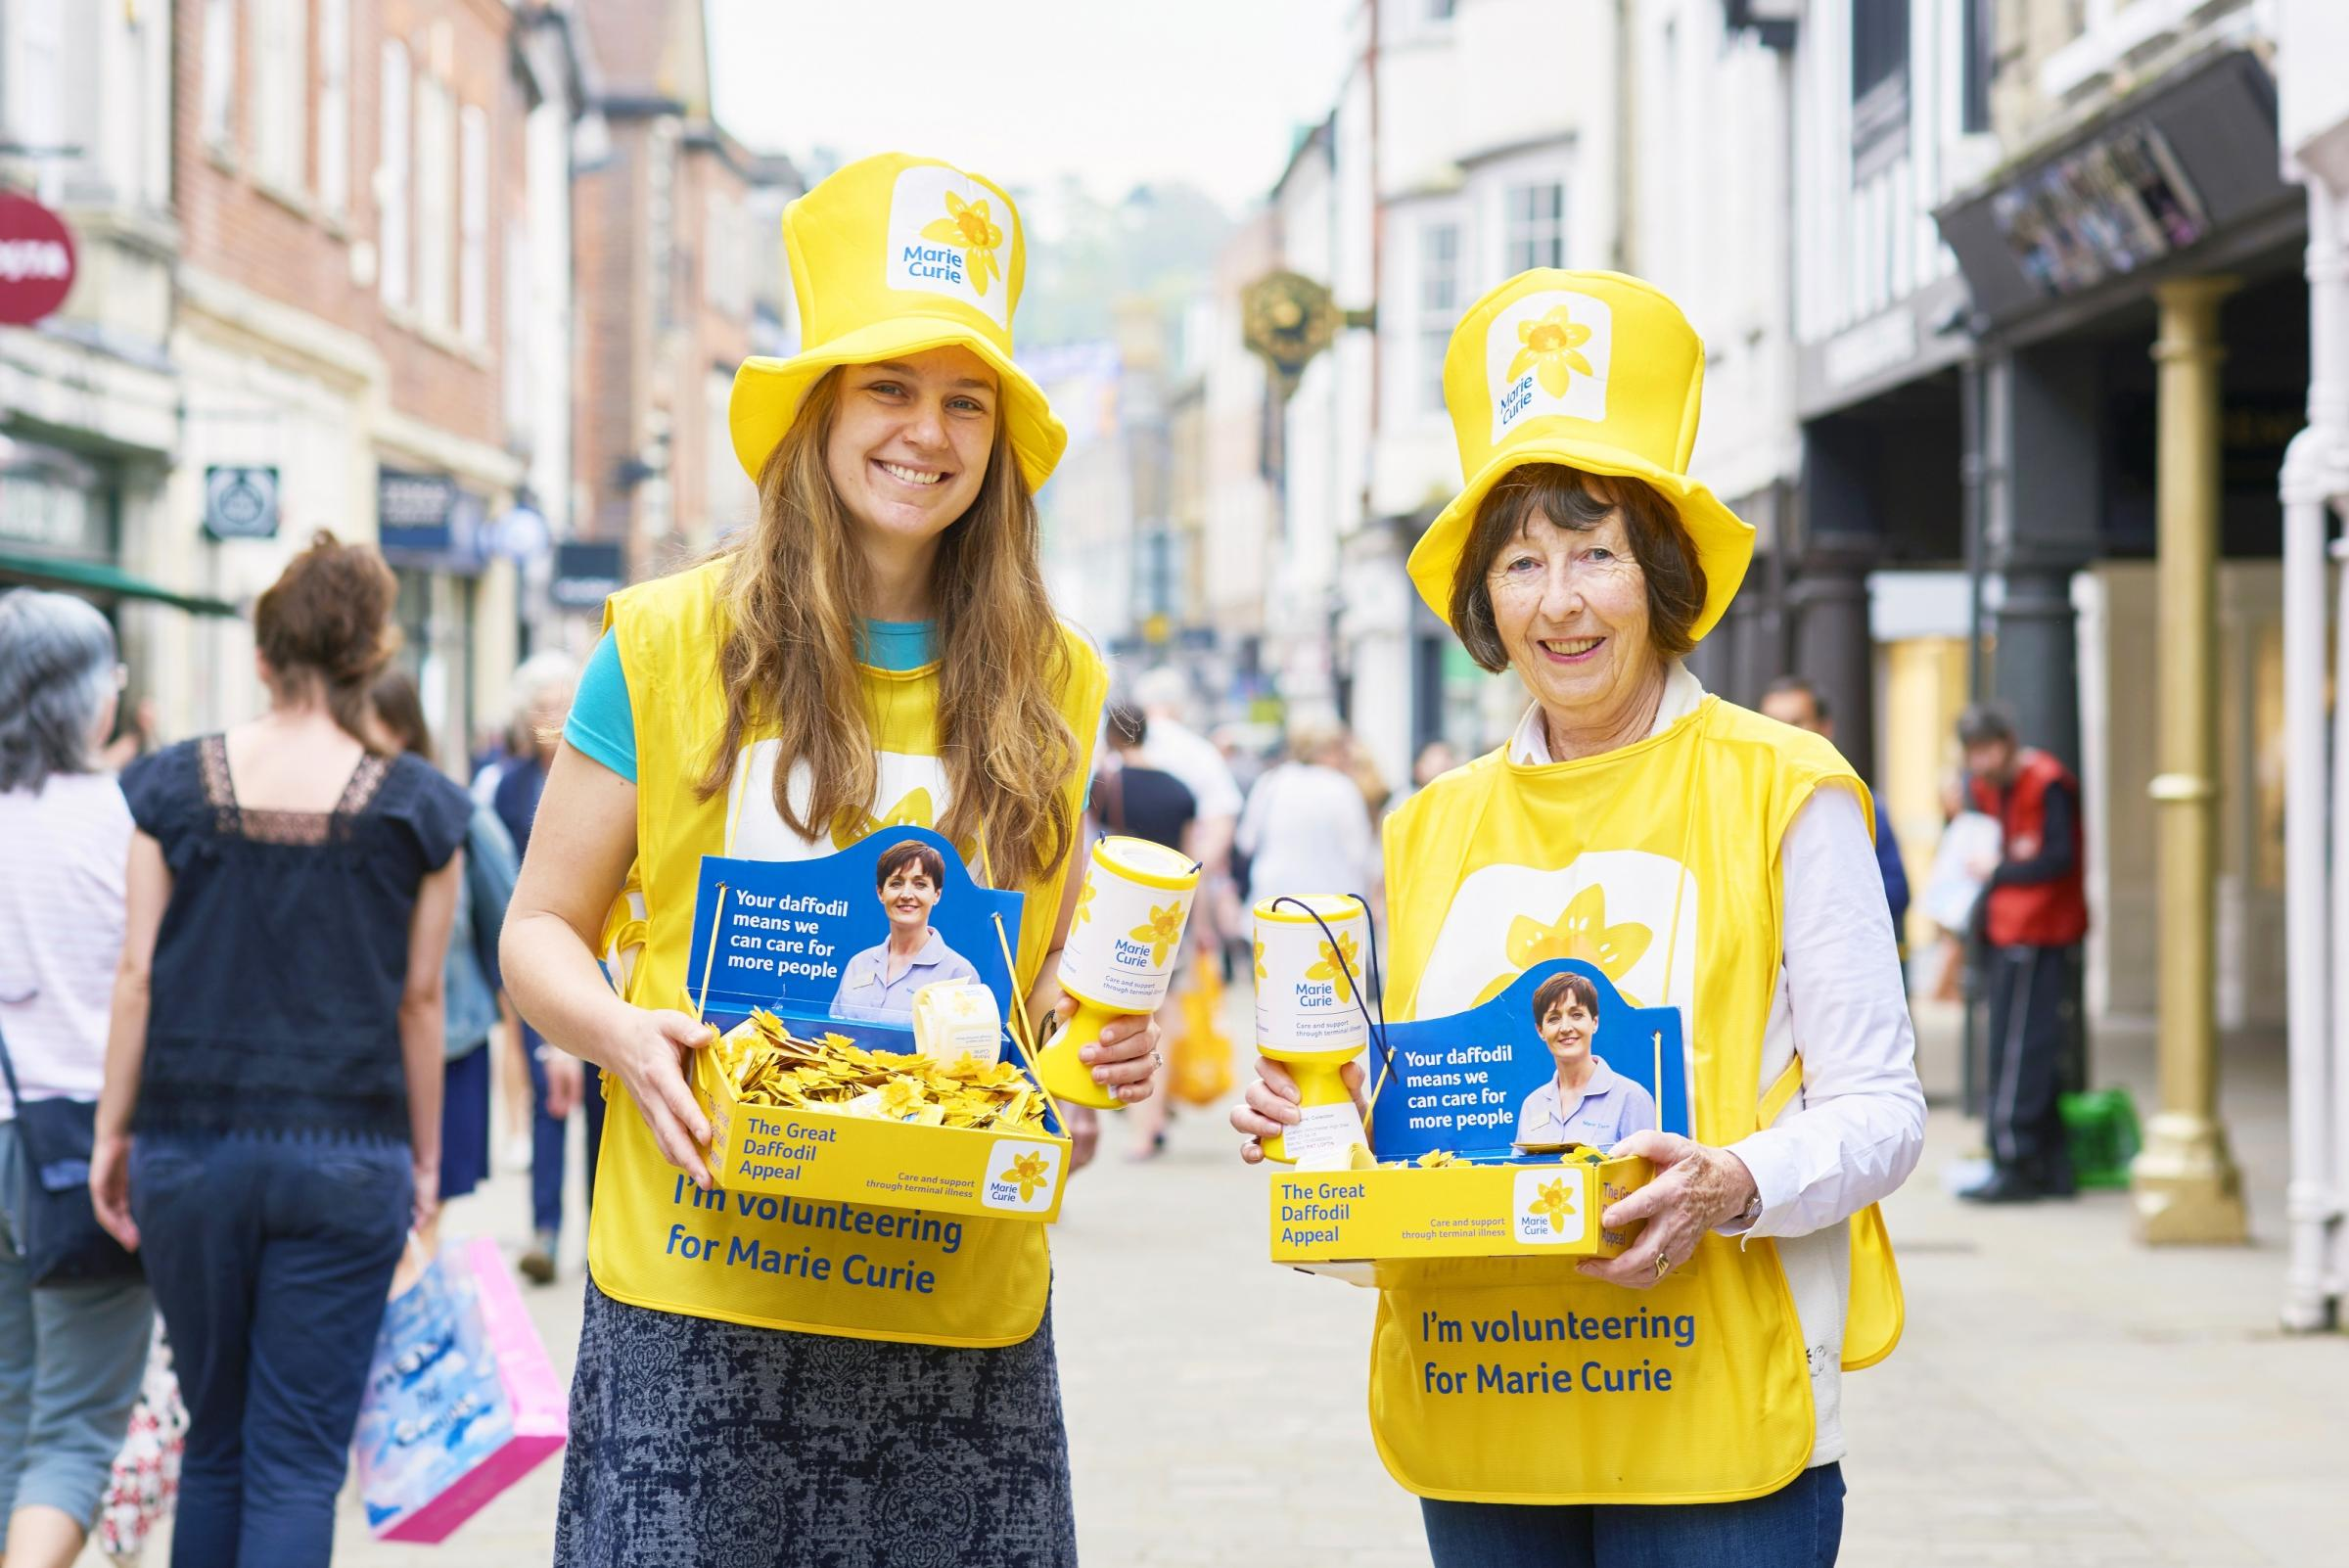 Volunteers collecting for the Great Daffodil Appeal 2018